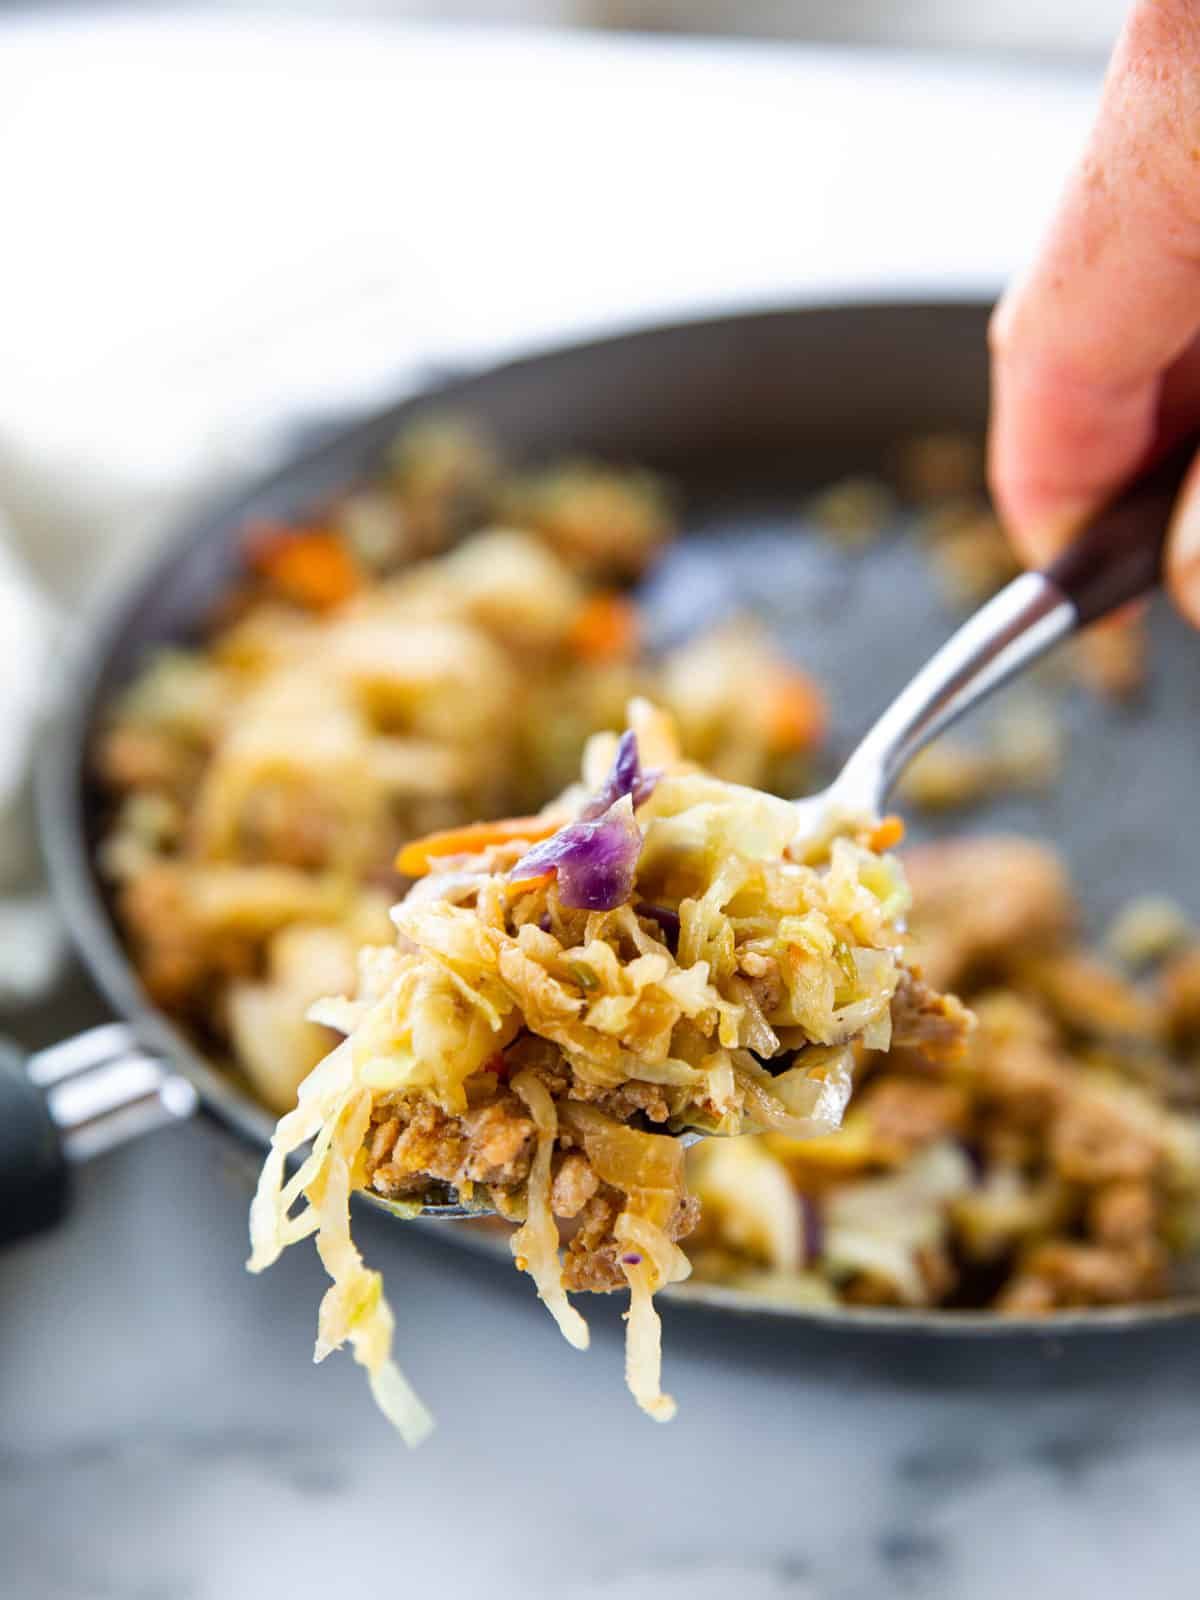 Pork egg roll stuffing shown up close on a serving spoon with the rest of the pan blurred in the background.